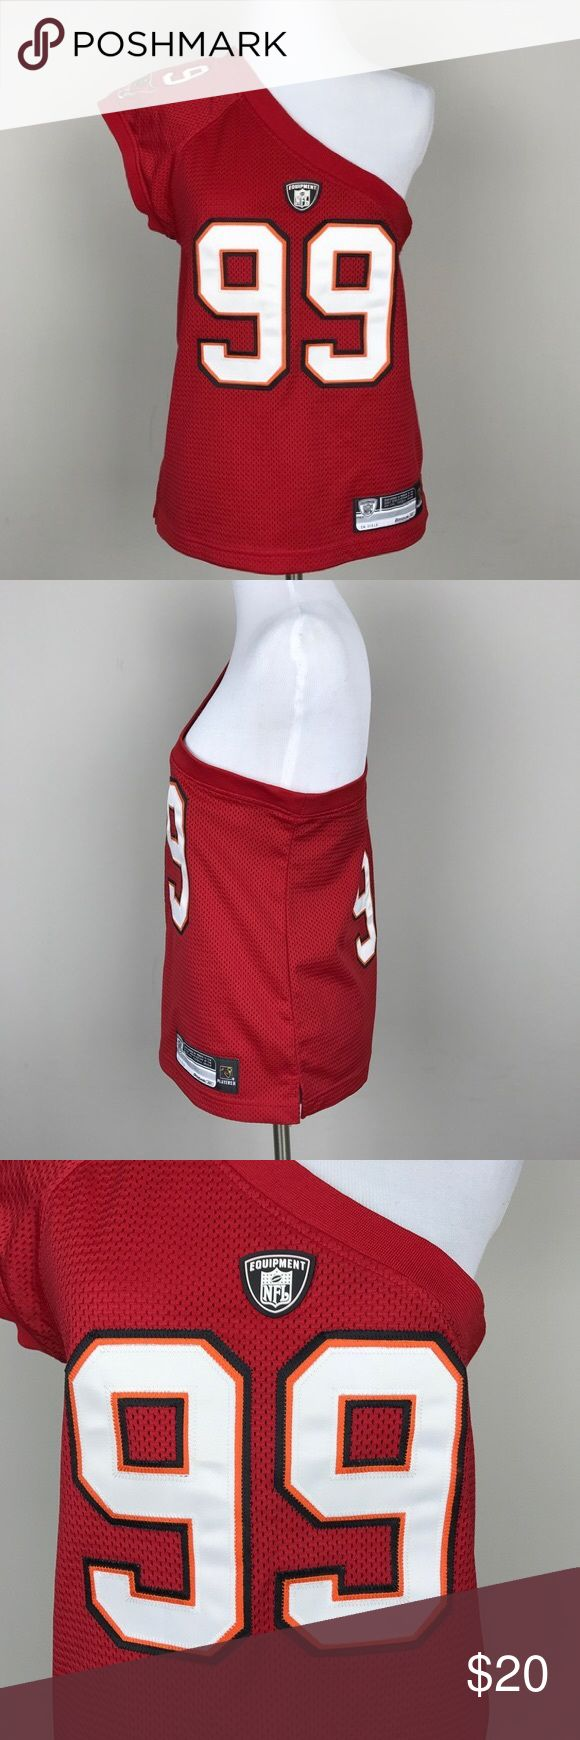 Reebok Warren Sapp Tampa Bay One Shoulder Jersey Rare Reebok Warren Sapp Tampa Bay One Shoulder Jersey I love this jersey but a little too big for me. I have gotten a lot of compliments on this jersey where ever I wore it. You'll definitely stand out from the others! Reebok Tops